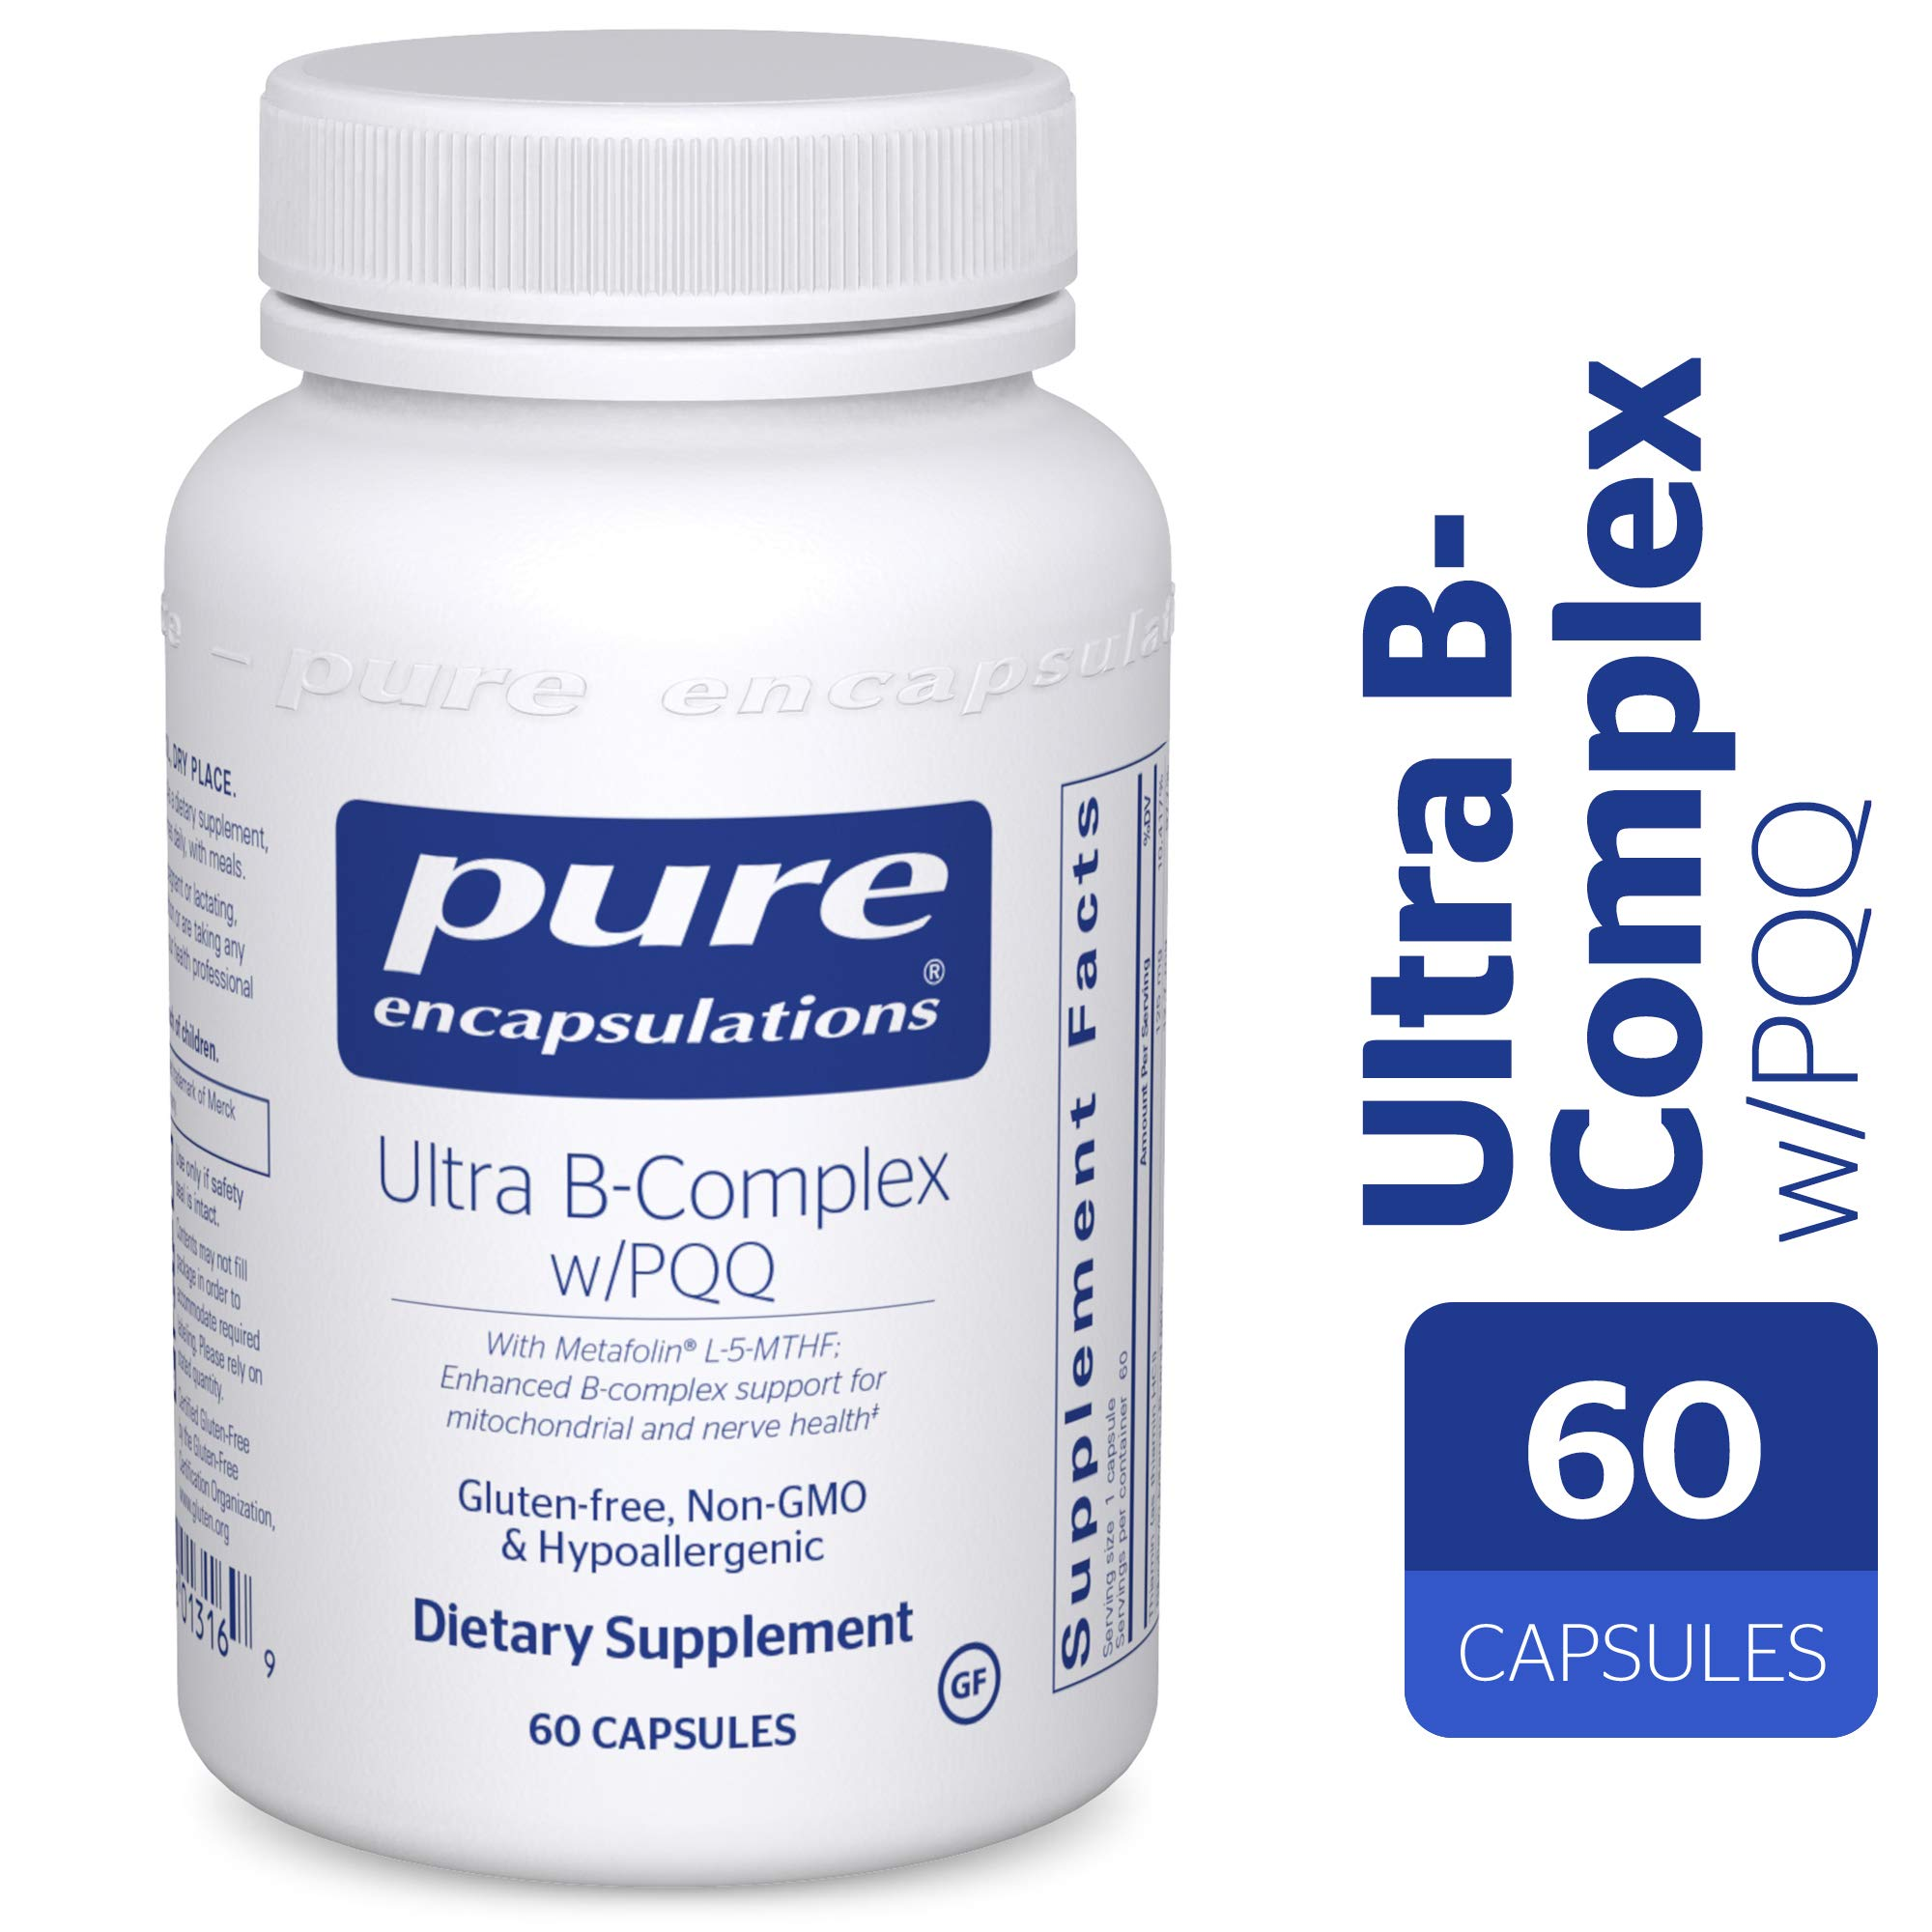 Pure Encapsulations - Ultra B-Complex w/PQQ - Hypoallergenic Supplement with Enhanced Vitamin B-Complex for Mitochondrial and Nerve Health* - 60 Capsules by Pure Encapsulations